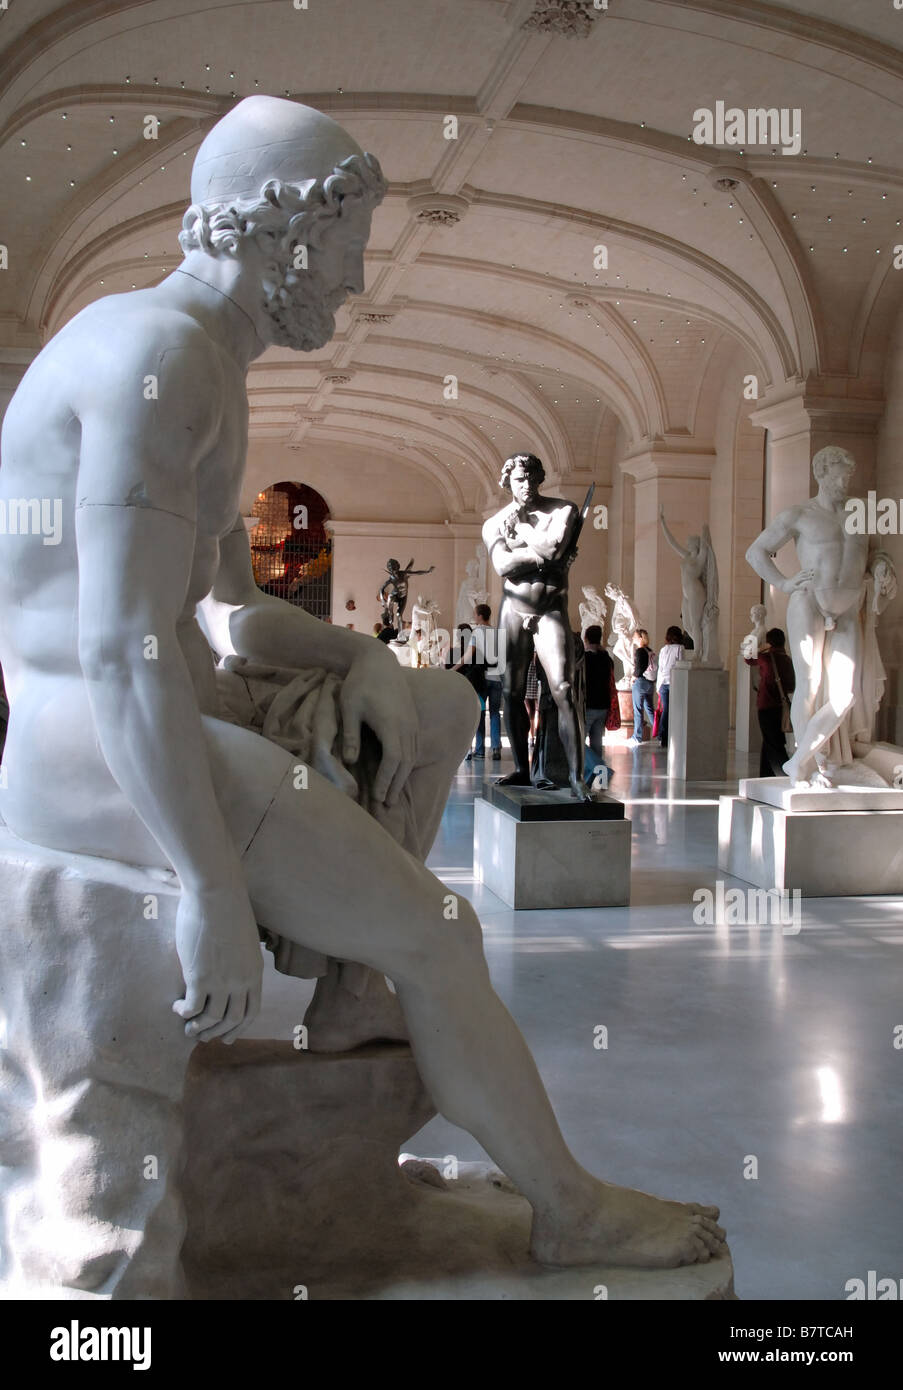 Sculpture Gallery in the Palais des Beaux Arts, Lille, France Stock Photo